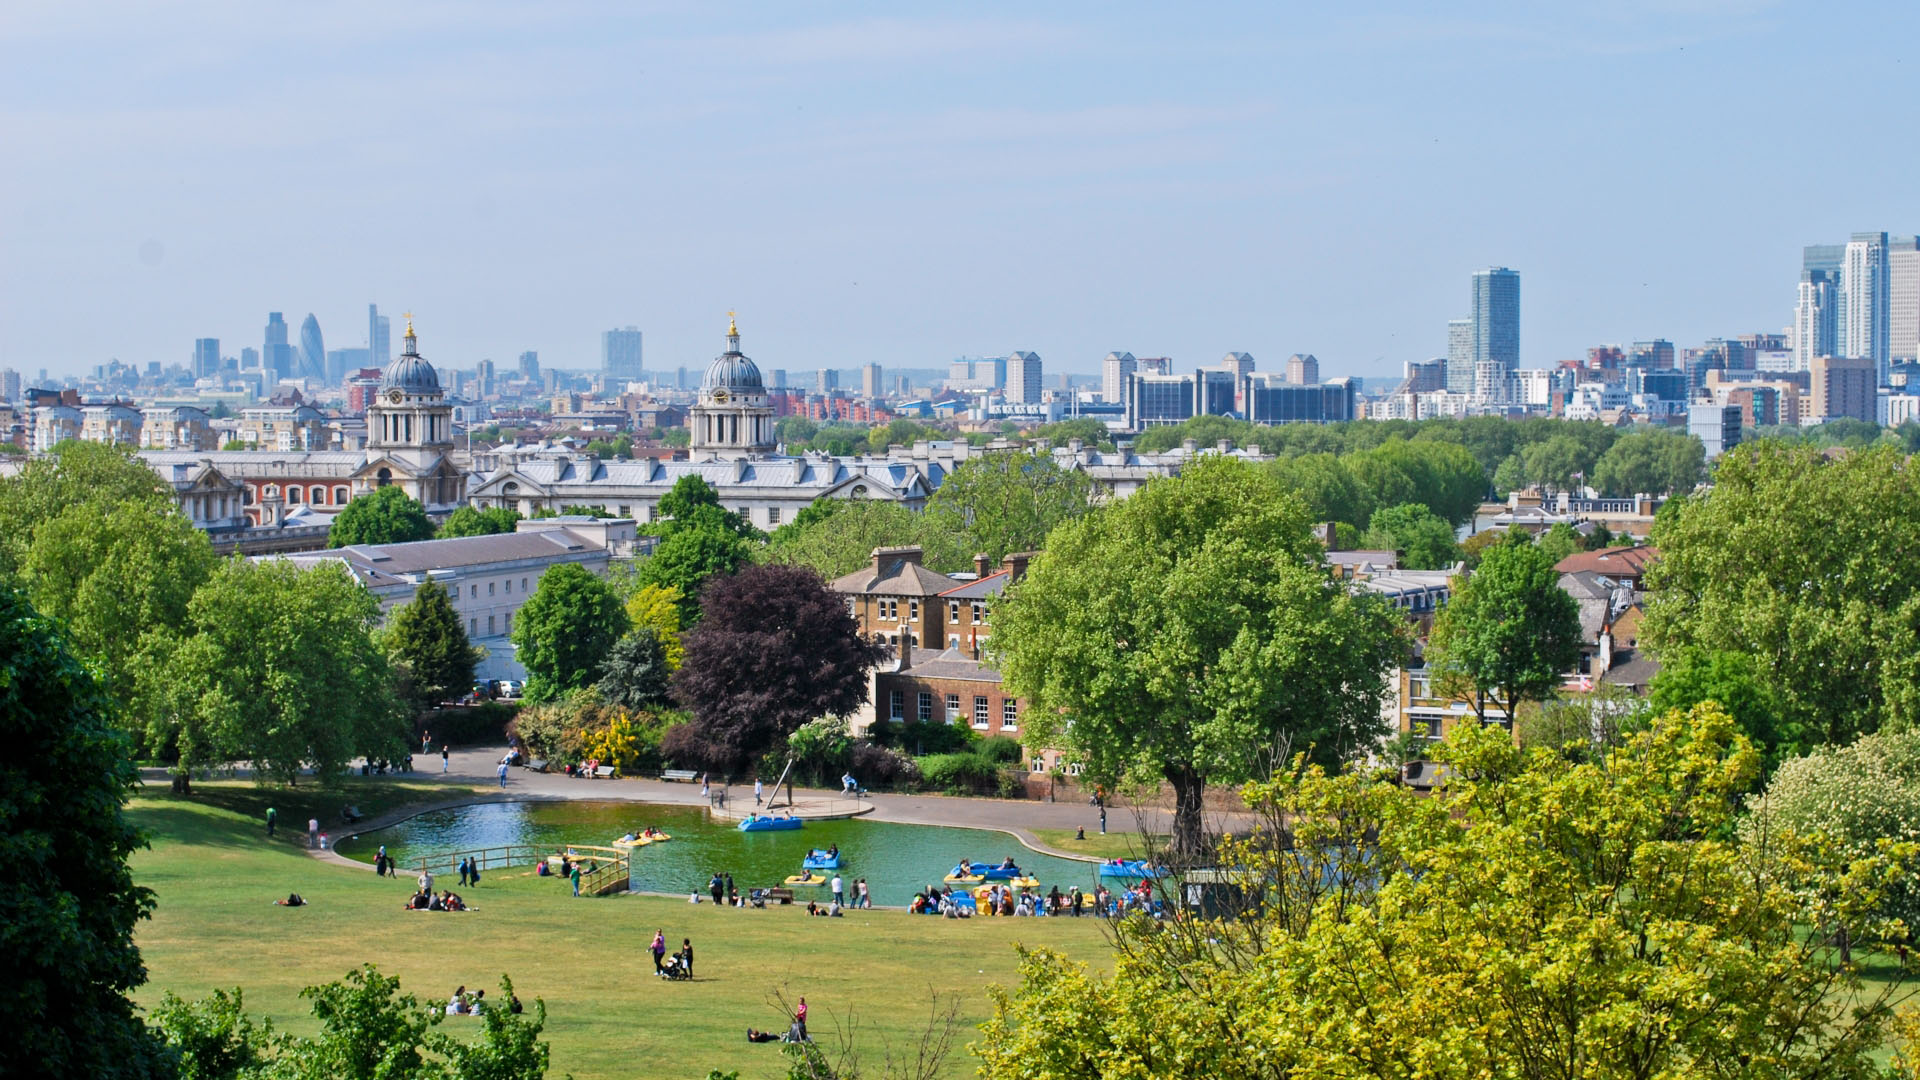 People sit on green lawns in Greenwich Park in front of a view of the London skyline.